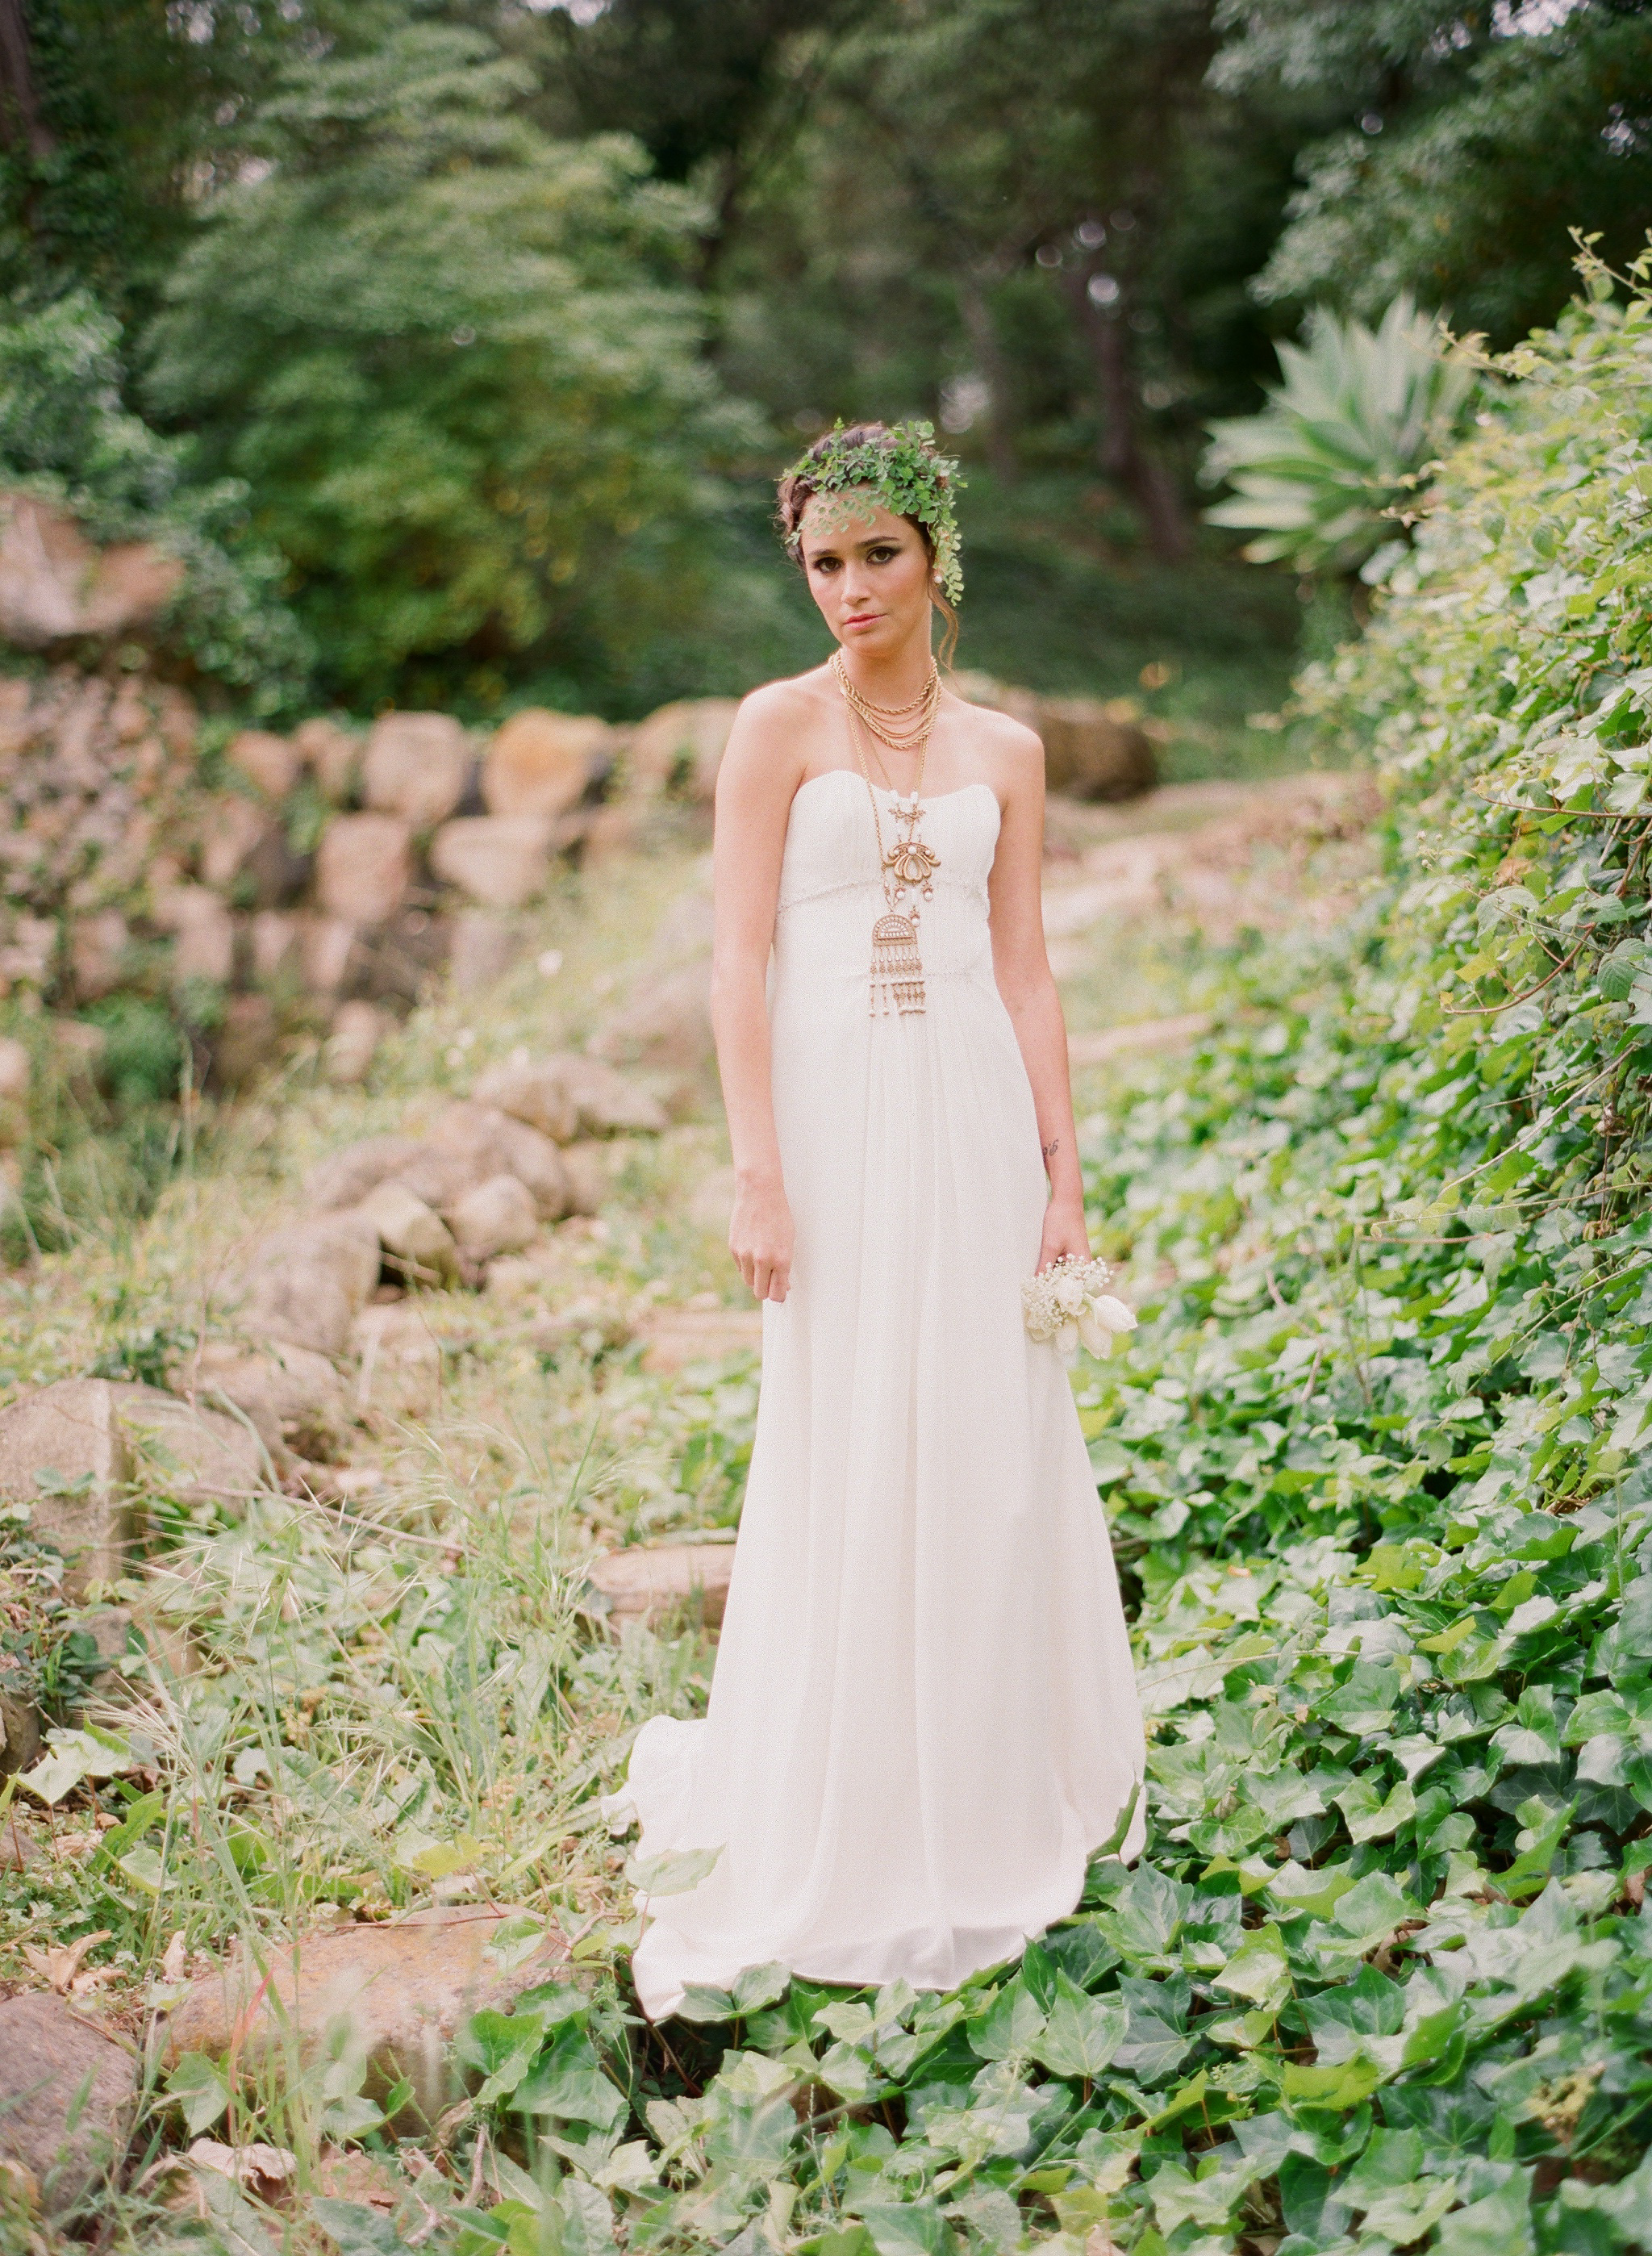 Styled-wedding-santa-barbara-chic-beaux-arts-phtographie-italian-bohemian-wedding-bride-wedding-dress-109.original